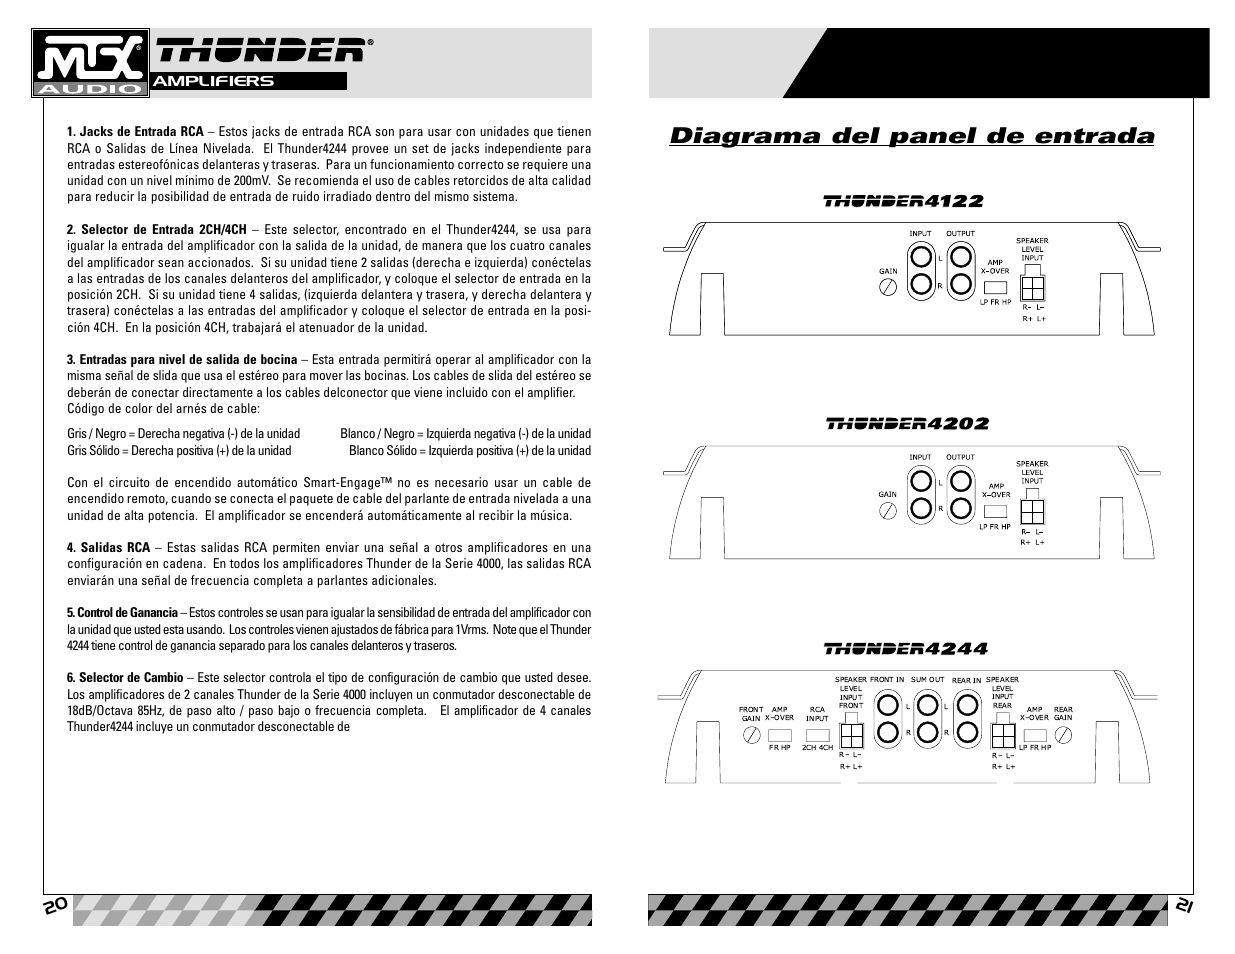 diagrama del panel de entrada mtx audio thunder4202 user manual rh manualsdir com MTX Thunder Speakers MTX Thunder Speakers